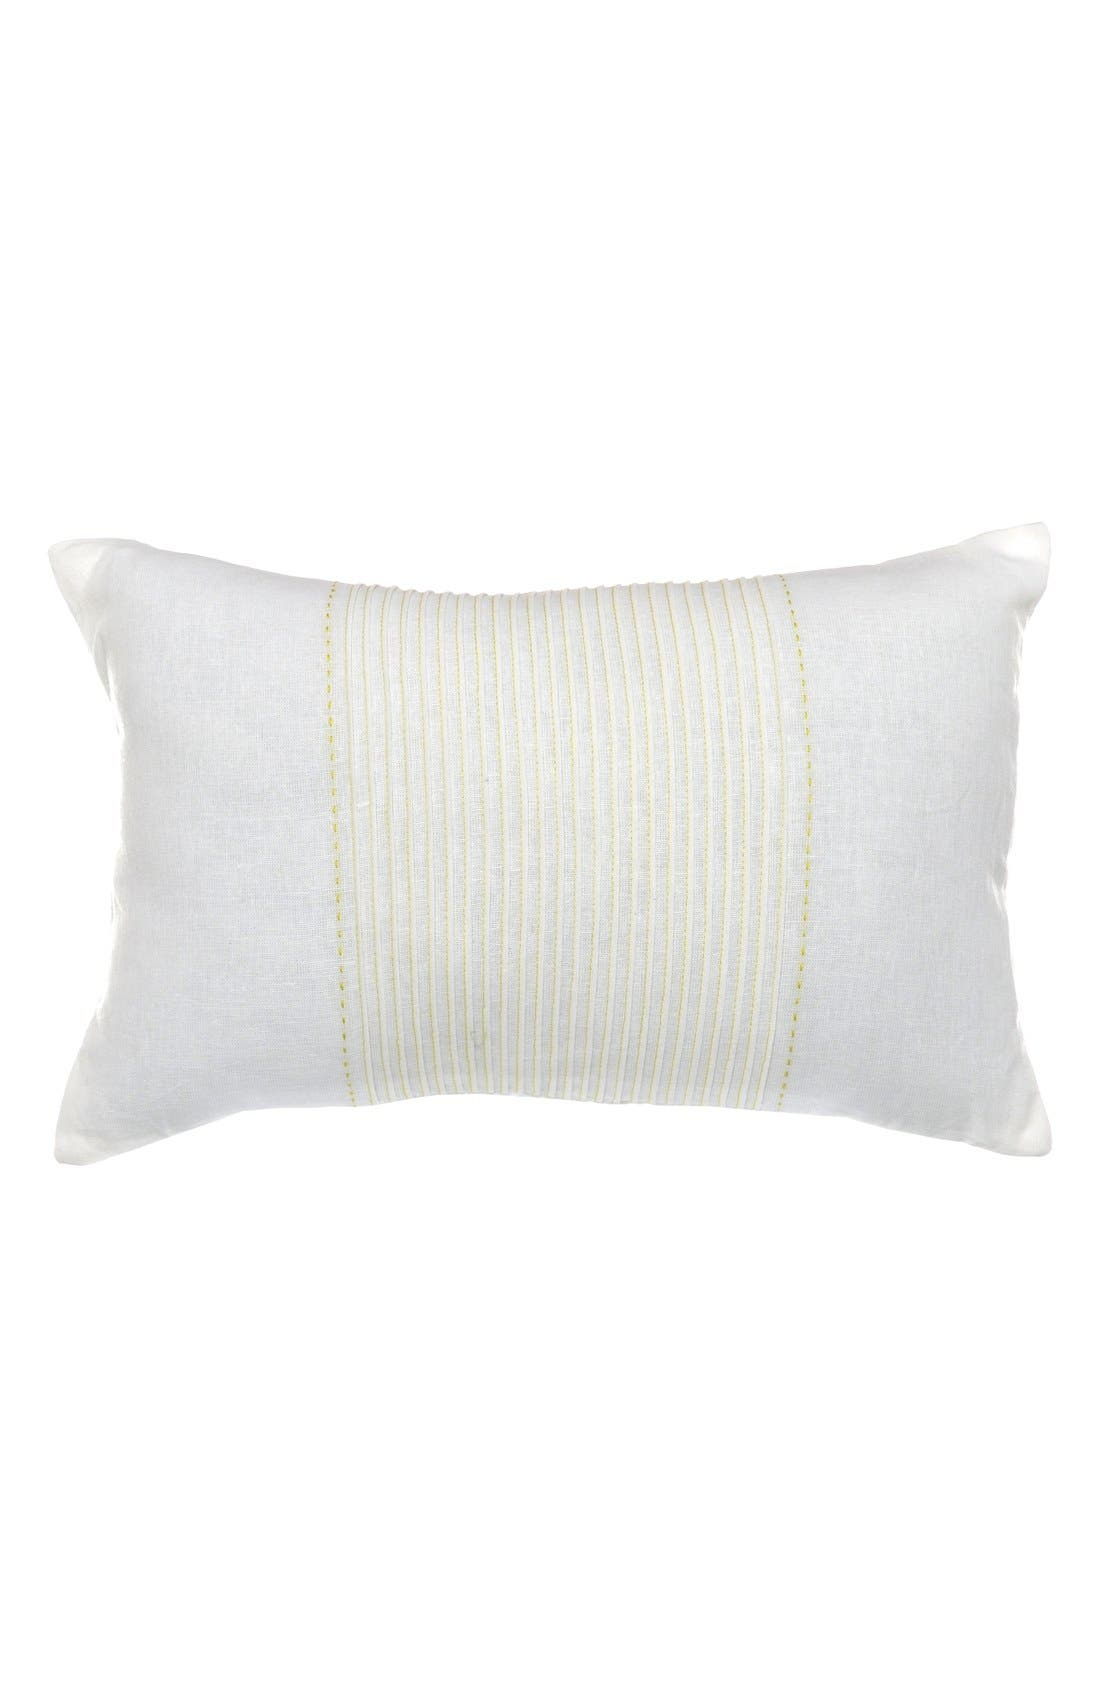 Alternate Image 1 Selected - Nautica 'Delwood - Breakfast' Linen & Cotton Accent Pillow